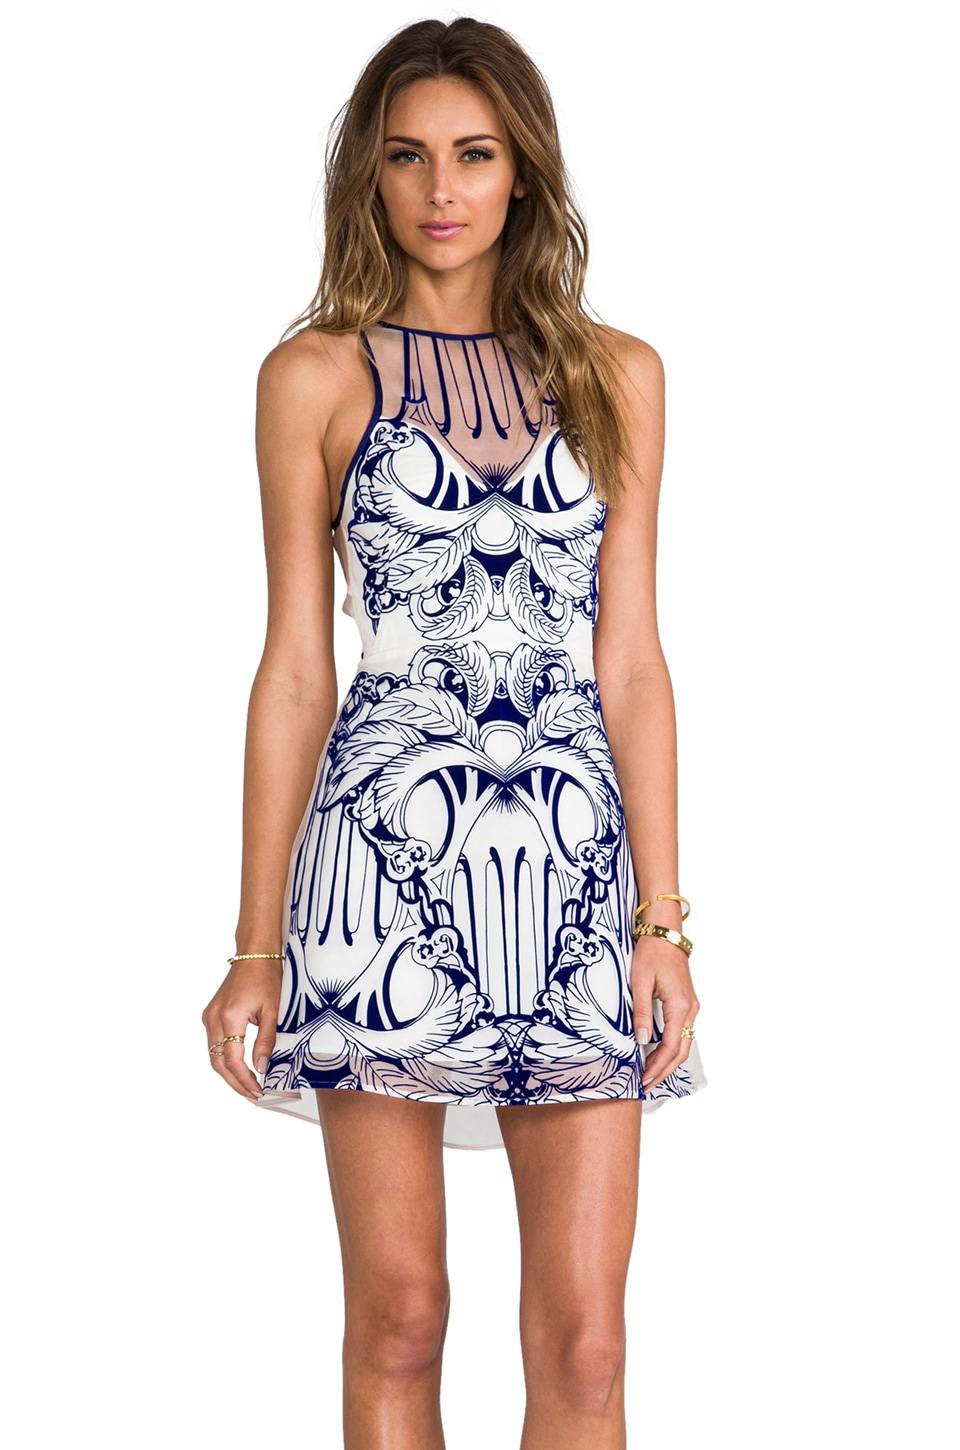 Alice McCall Tied to the Rocks Dress in Flocked Combs